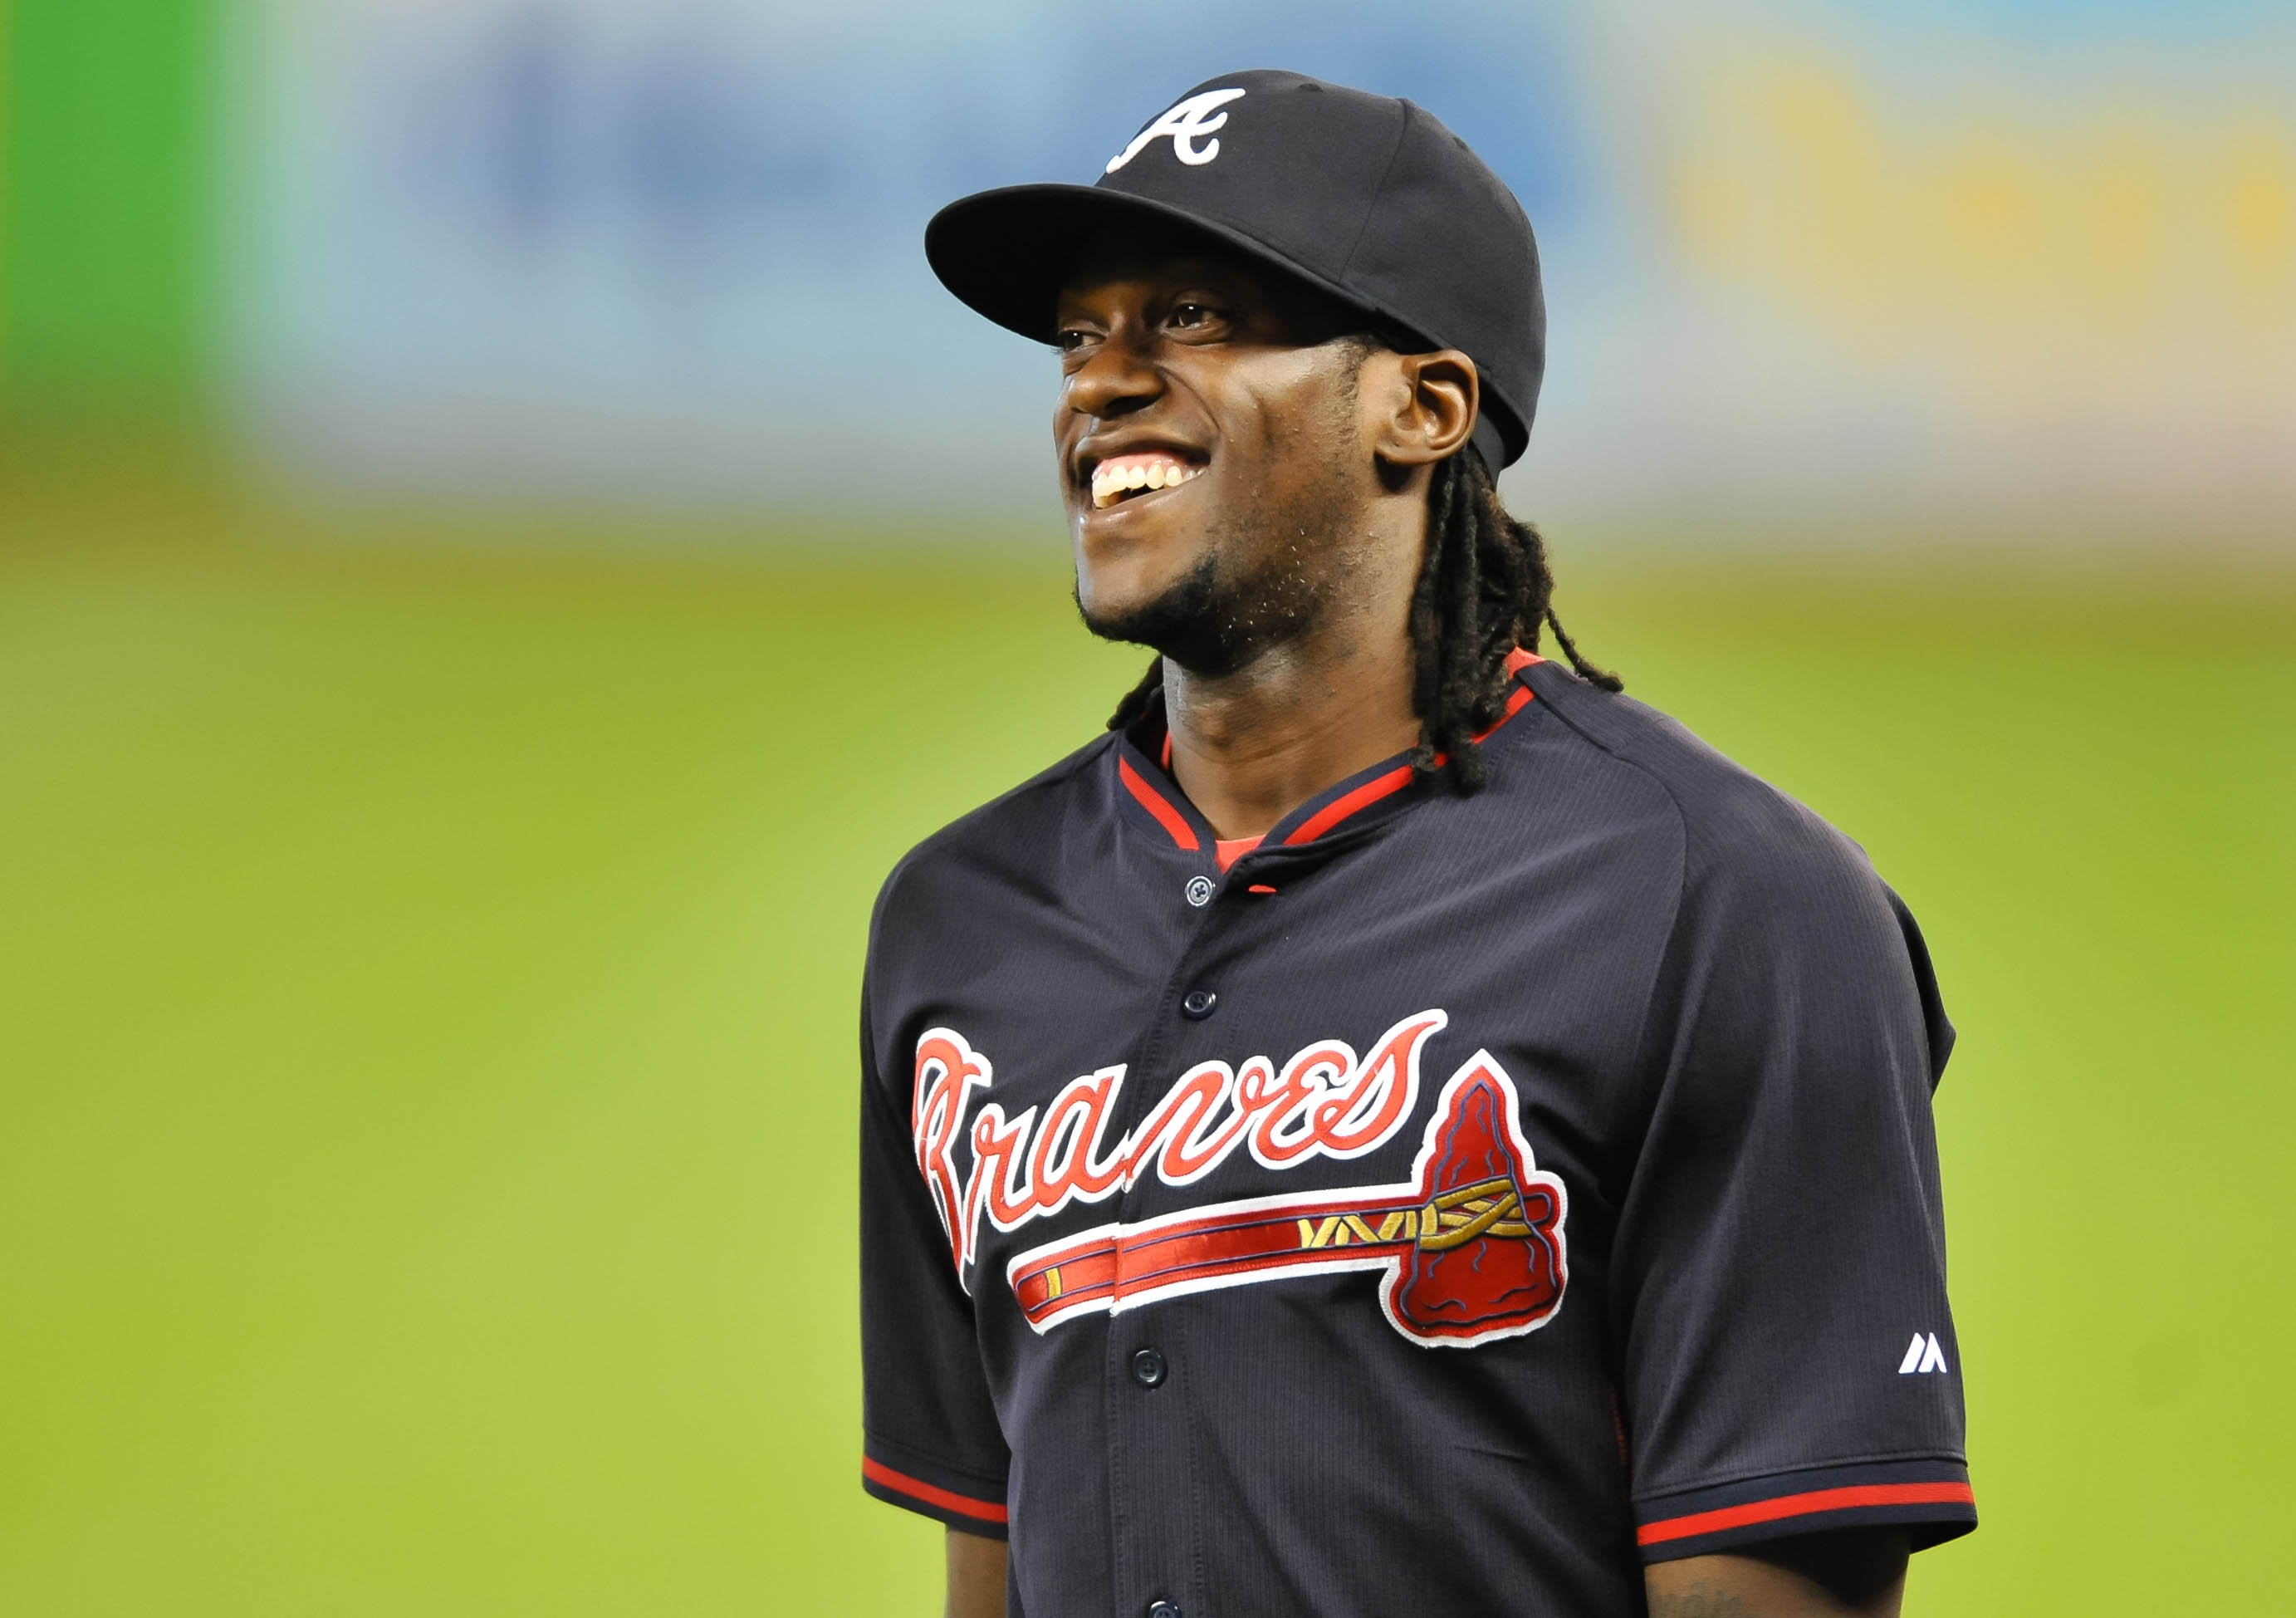 Tigers acquire Cameron Maybin from Braves in 3-player trade